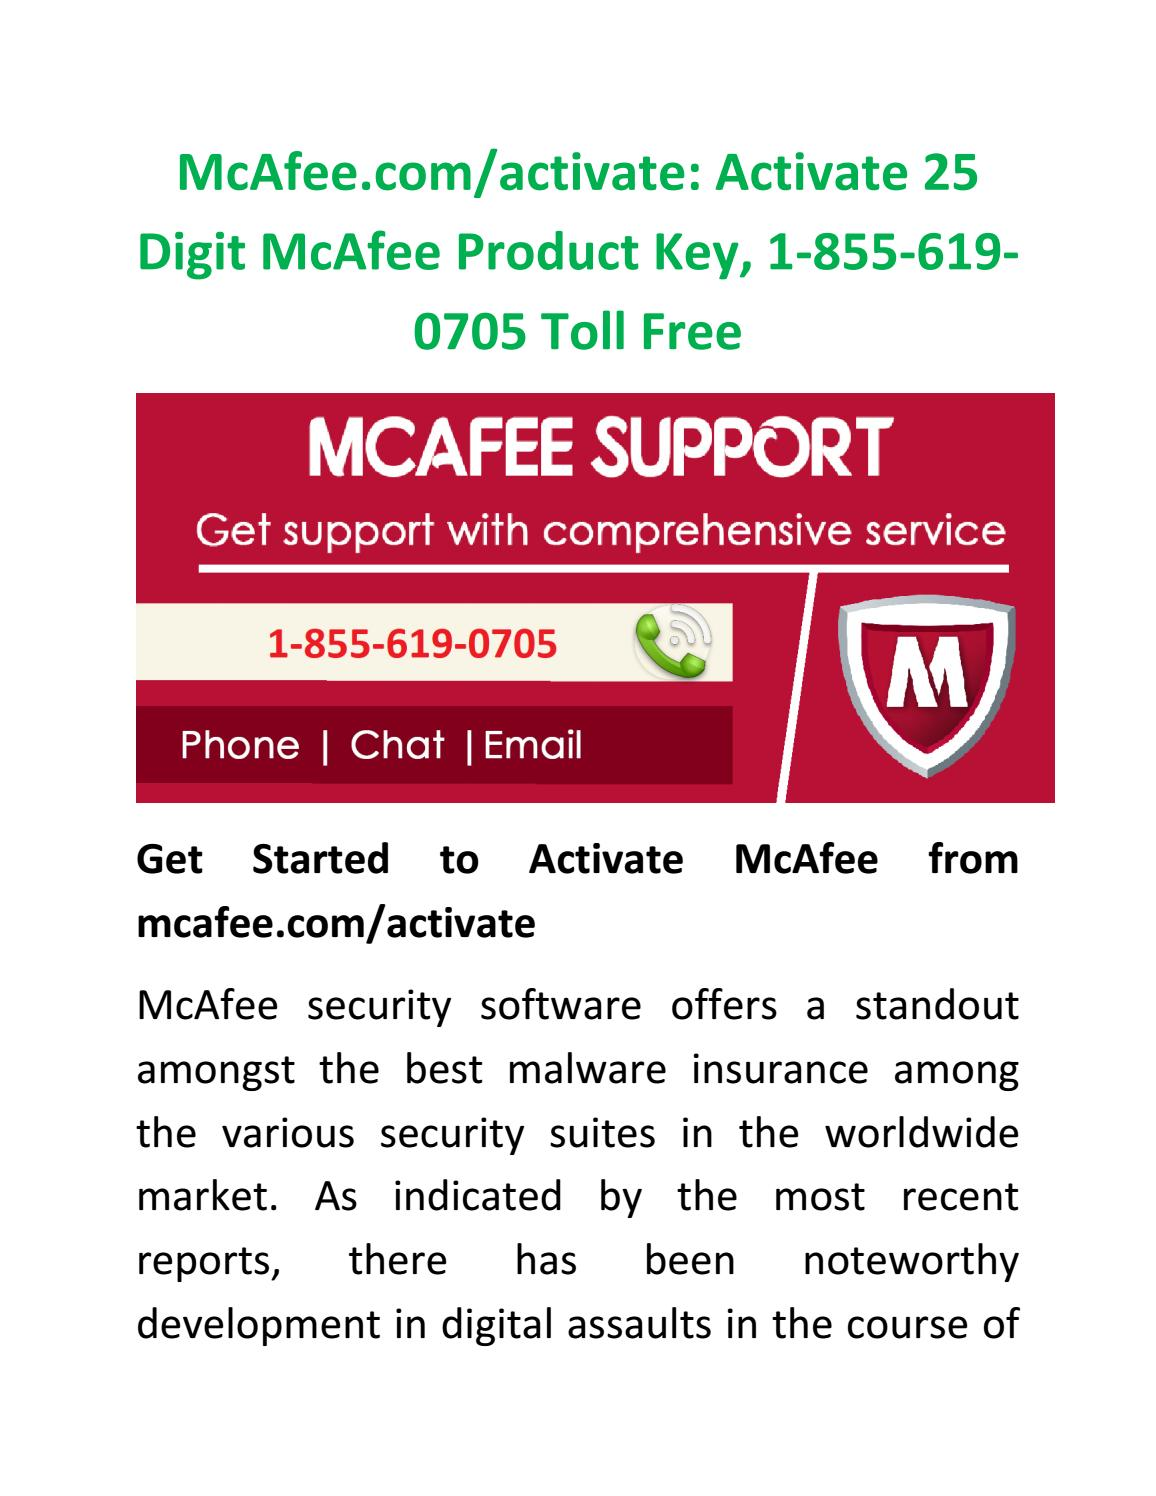 McAfee com/activate: Activate 25 Digit McAfee Product Key, 1